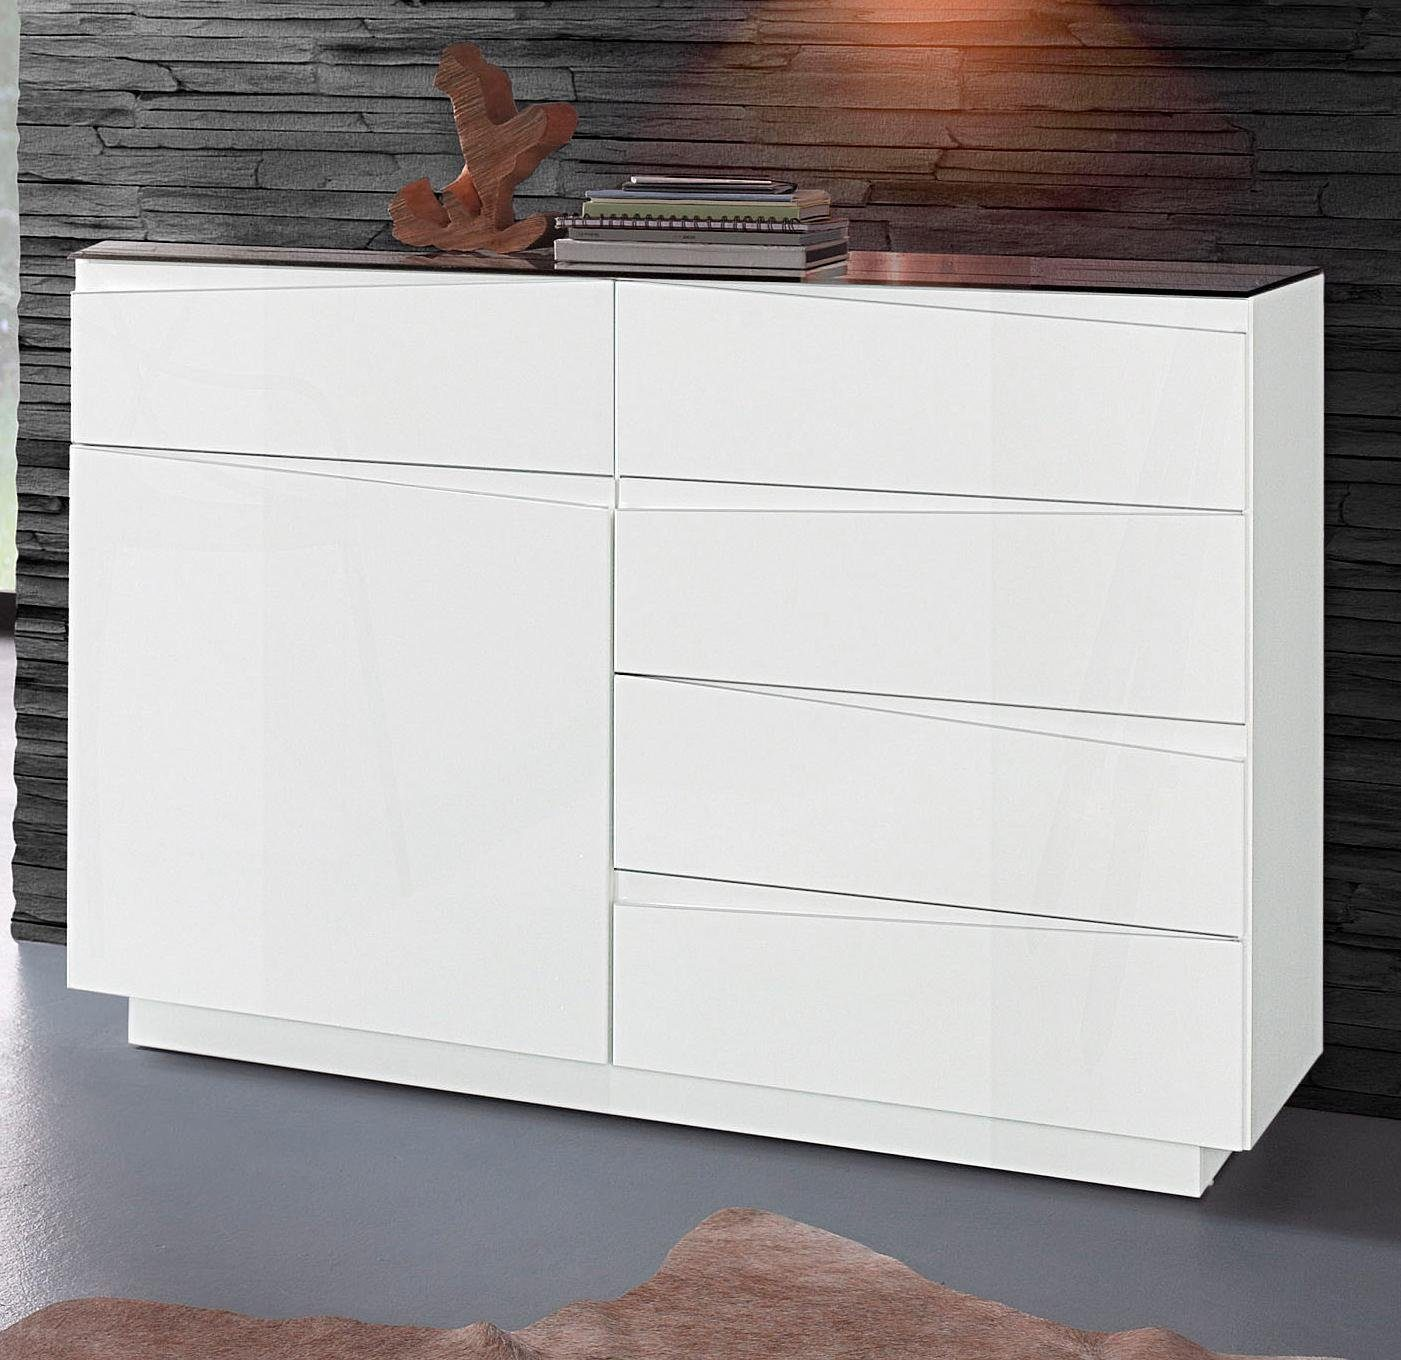 Highboard 120 Cm Breit Sideboard Wei Hochglanz 160 Cm Elegant Best Pretentious Idea